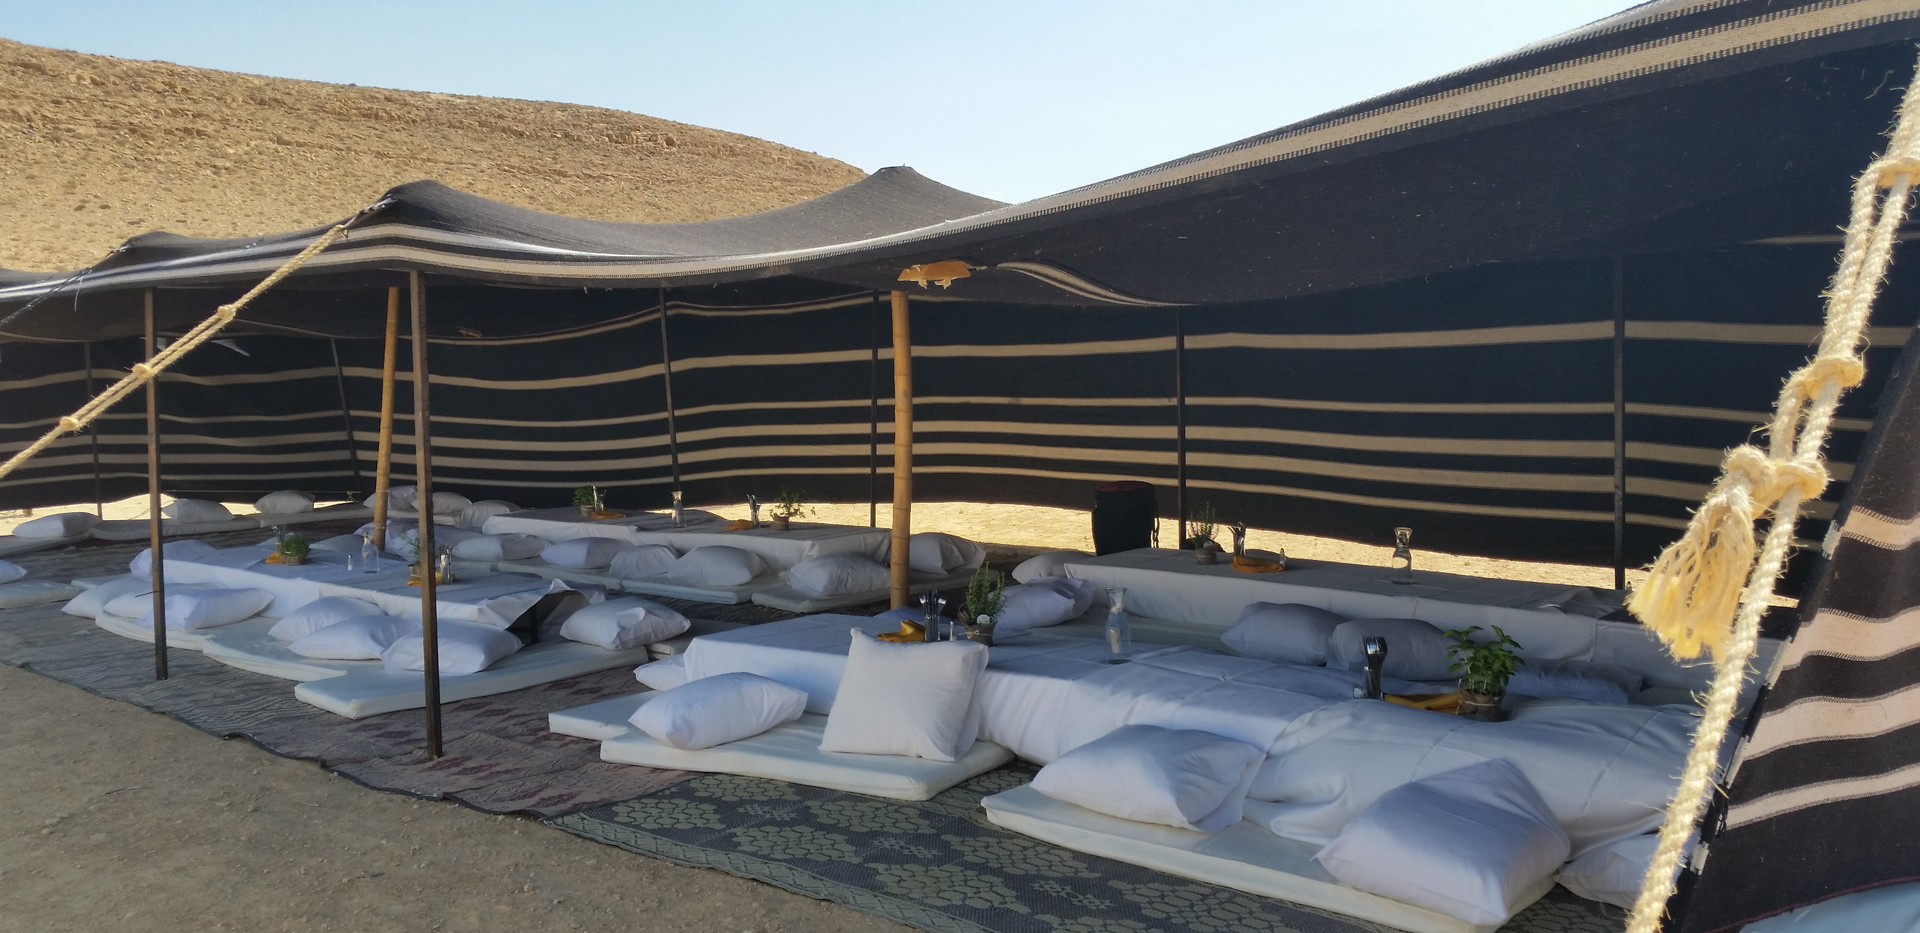 Desert style party setup in the Negev